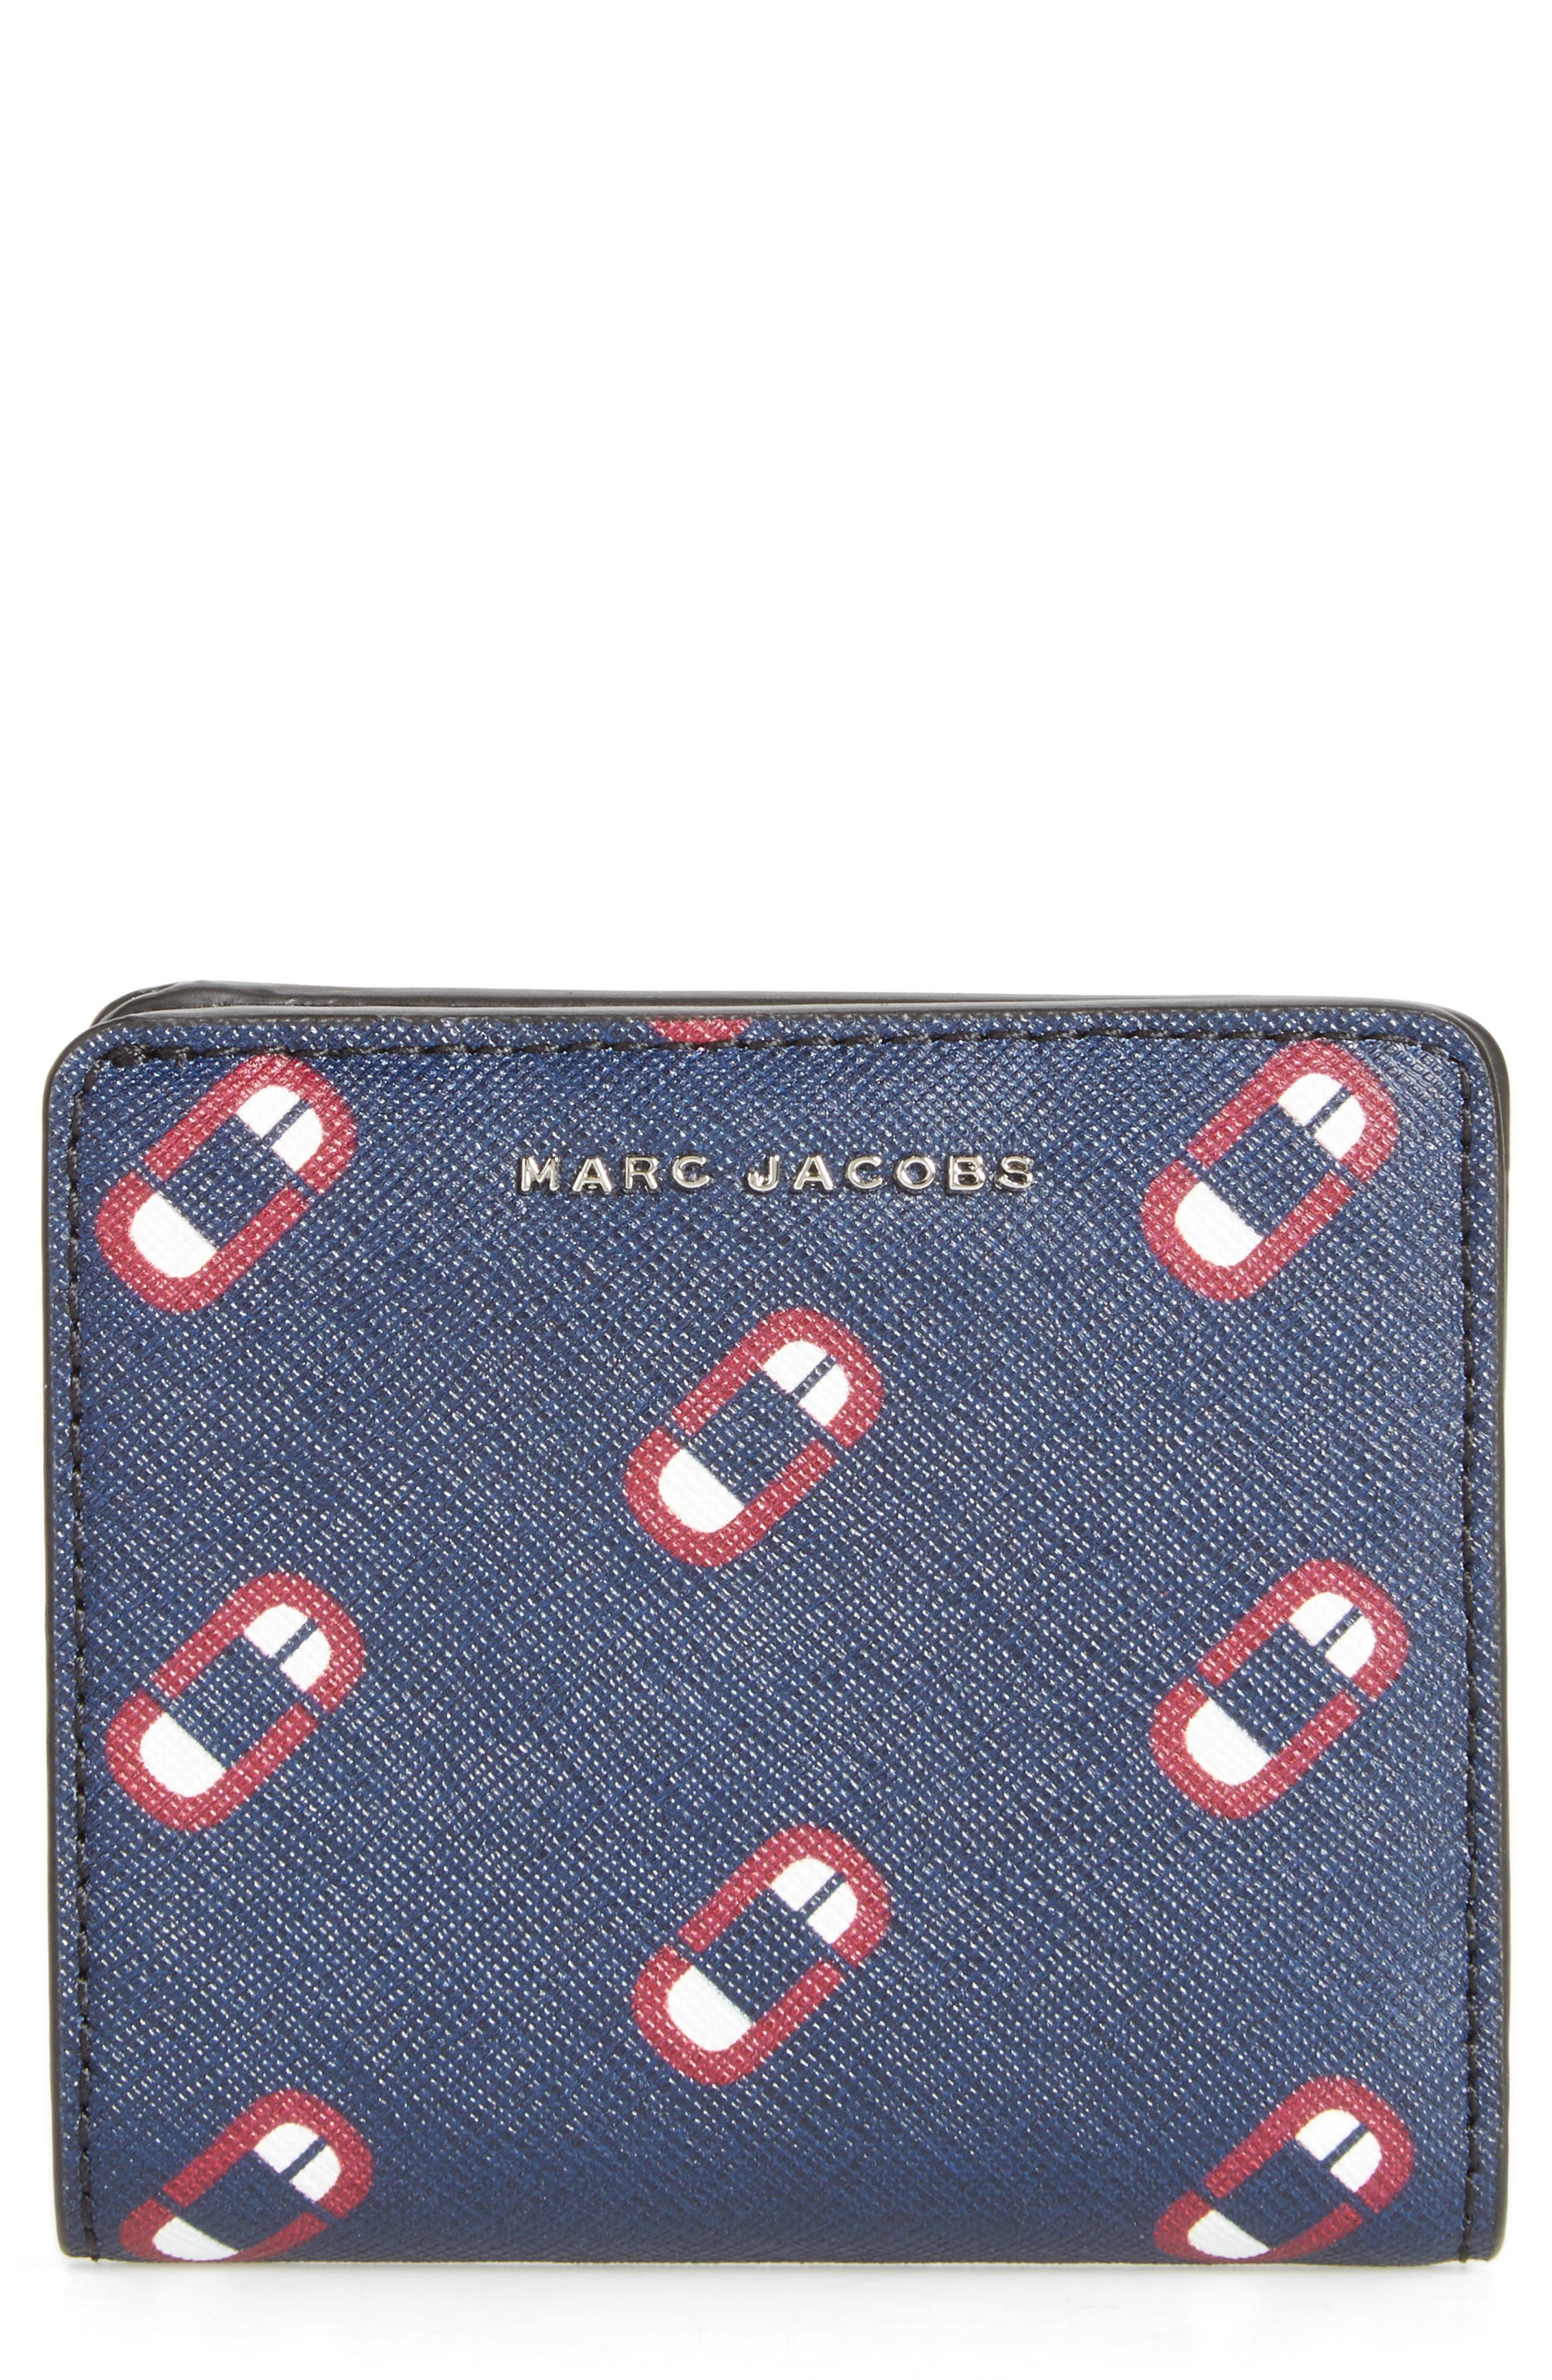 Alternate Image 1 Selected - MARC JACOBS Scream Saffiano Leather Wallet